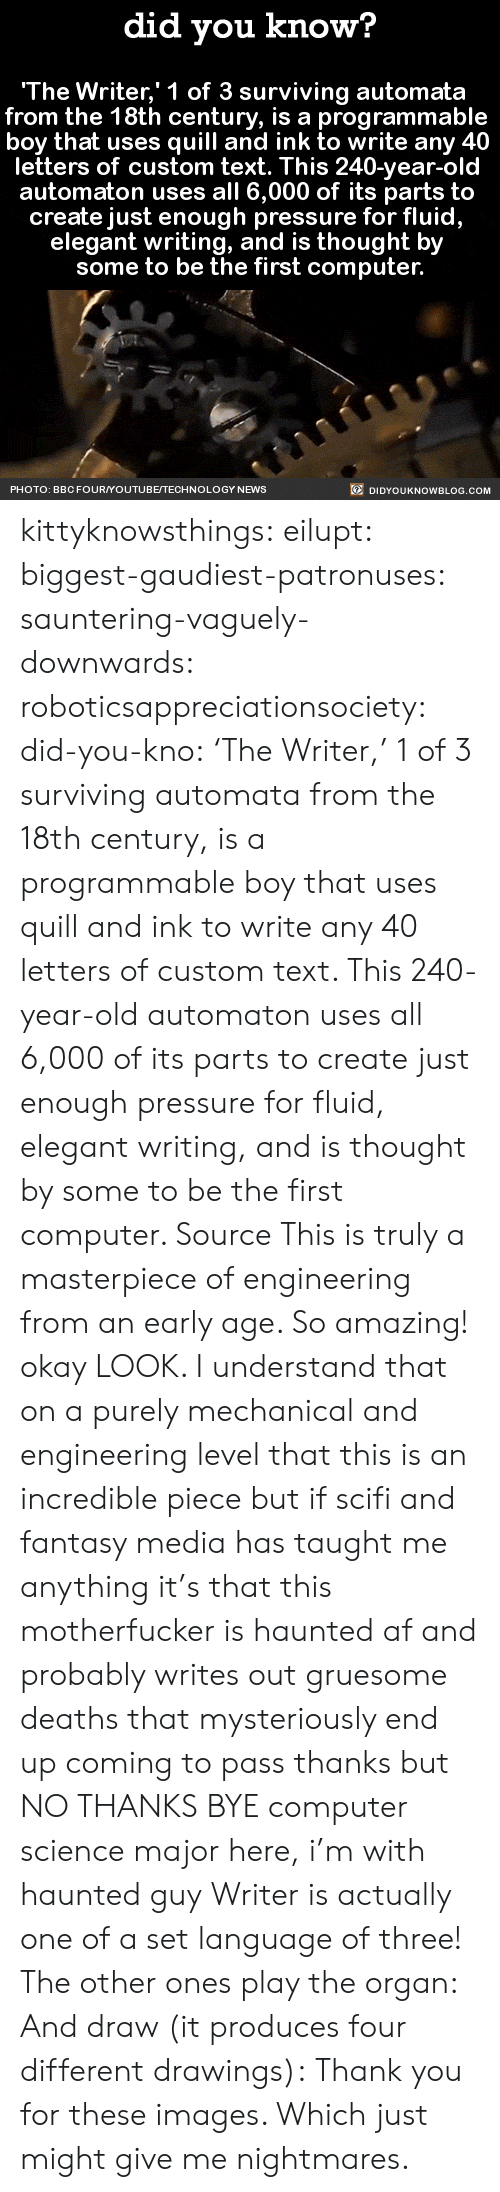 Produces: did you know?  The Writer,' 1 of 3 surviving automata  from the 18th century, is a programma  boy that uses quill and ink to write any 40  letters of custom text. This 240-year-old  automaton uses all 6,000 of its parts to  create just enough pressure for fluid,  elegant writing, and is thought by  some to be the first computer.  PHOTO: BBCFOURYOUTUBE/TECHNOLOGY NEWS  DIDYOUKNOWBLOG.COM kittyknowsthings: eilupt:  biggest-gaudiest-patronuses:  sauntering-vaguely-downwards:  roboticsappreciationsociety:  did-you-kno:  'The Writer,' 1 of 3 surviving automata   from the 18th century, is a programmable  boy that uses quill and ink to write any 40  letters of custom text. This 240-year-old  automaton uses all 6,000 of its parts to  create just enough pressure for fluid,  elegant writing, and is thought by  some to be the first computer.  Source  This is truly a masterpiece of engineering from an early age. So amazing!  okay LOOK. I understand that on a purely mechanical and engineering level that this is an incredible piece but if scifi and fantasy media has taught me anything it's that this motherfucker is haunted af and probably writes out gruesome deaths that mysteriously end up coming to pass thanks but NO THANKS BYE  computer science major here, i'm with haunted guy  Writer is actually one of a set language of three! The other ones play the organ: And draw (it produces four different drawings):  Thank you for these images. Which just might give me nightmares.